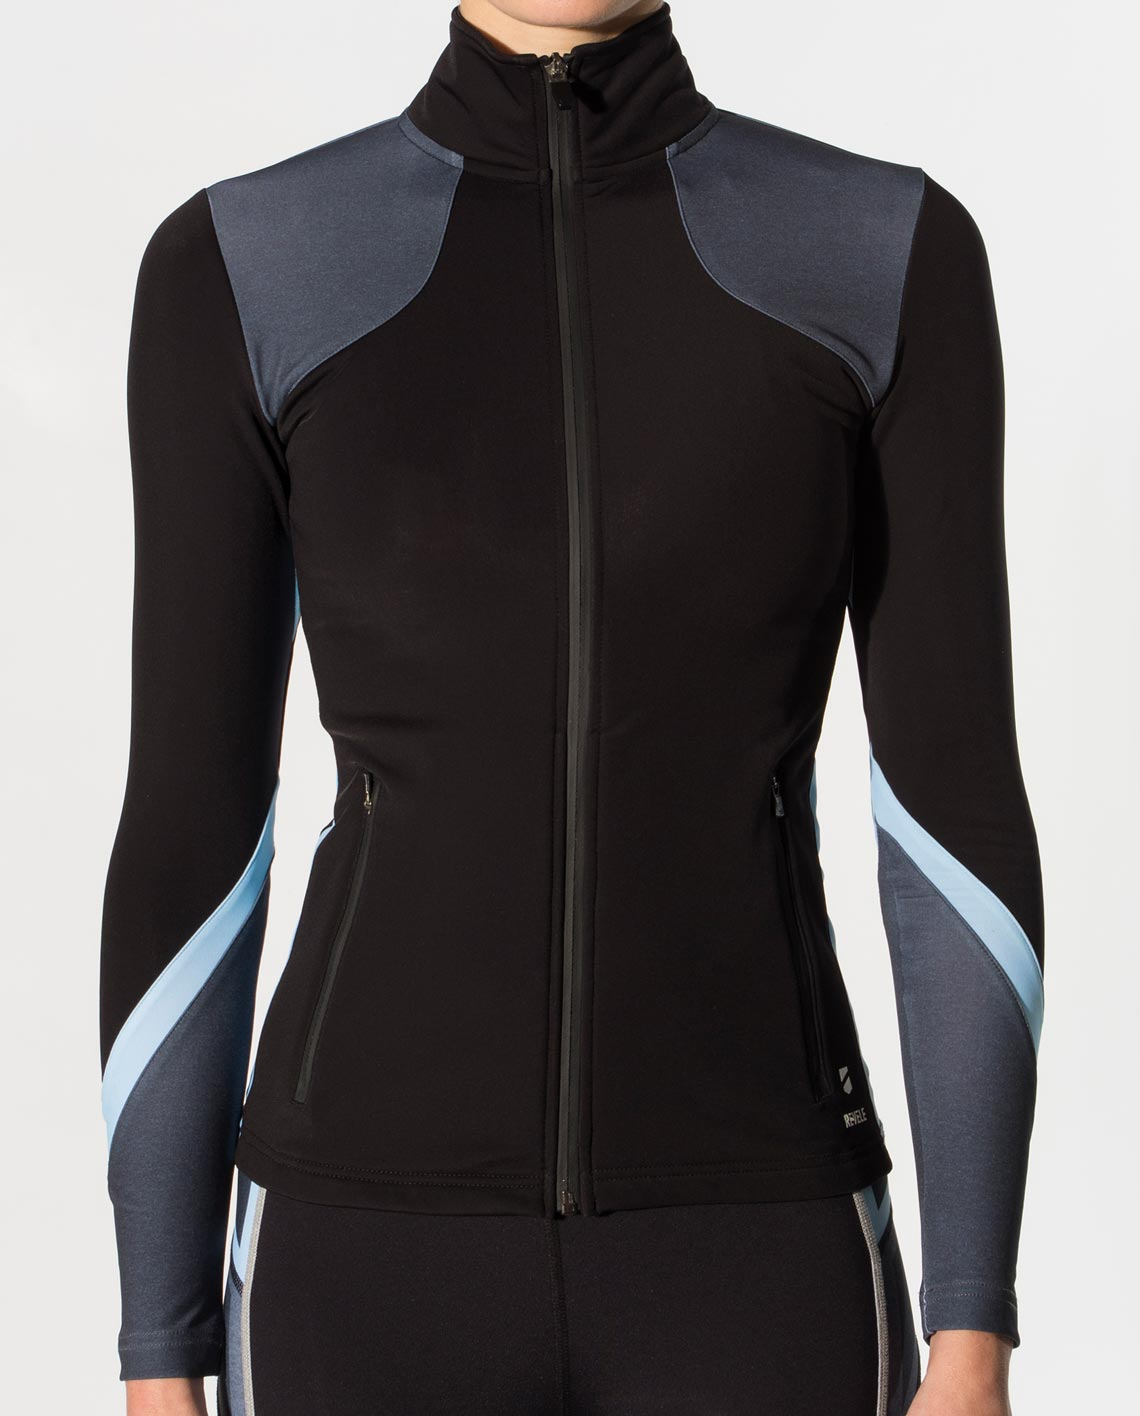 Sports Zip-up jacket for women